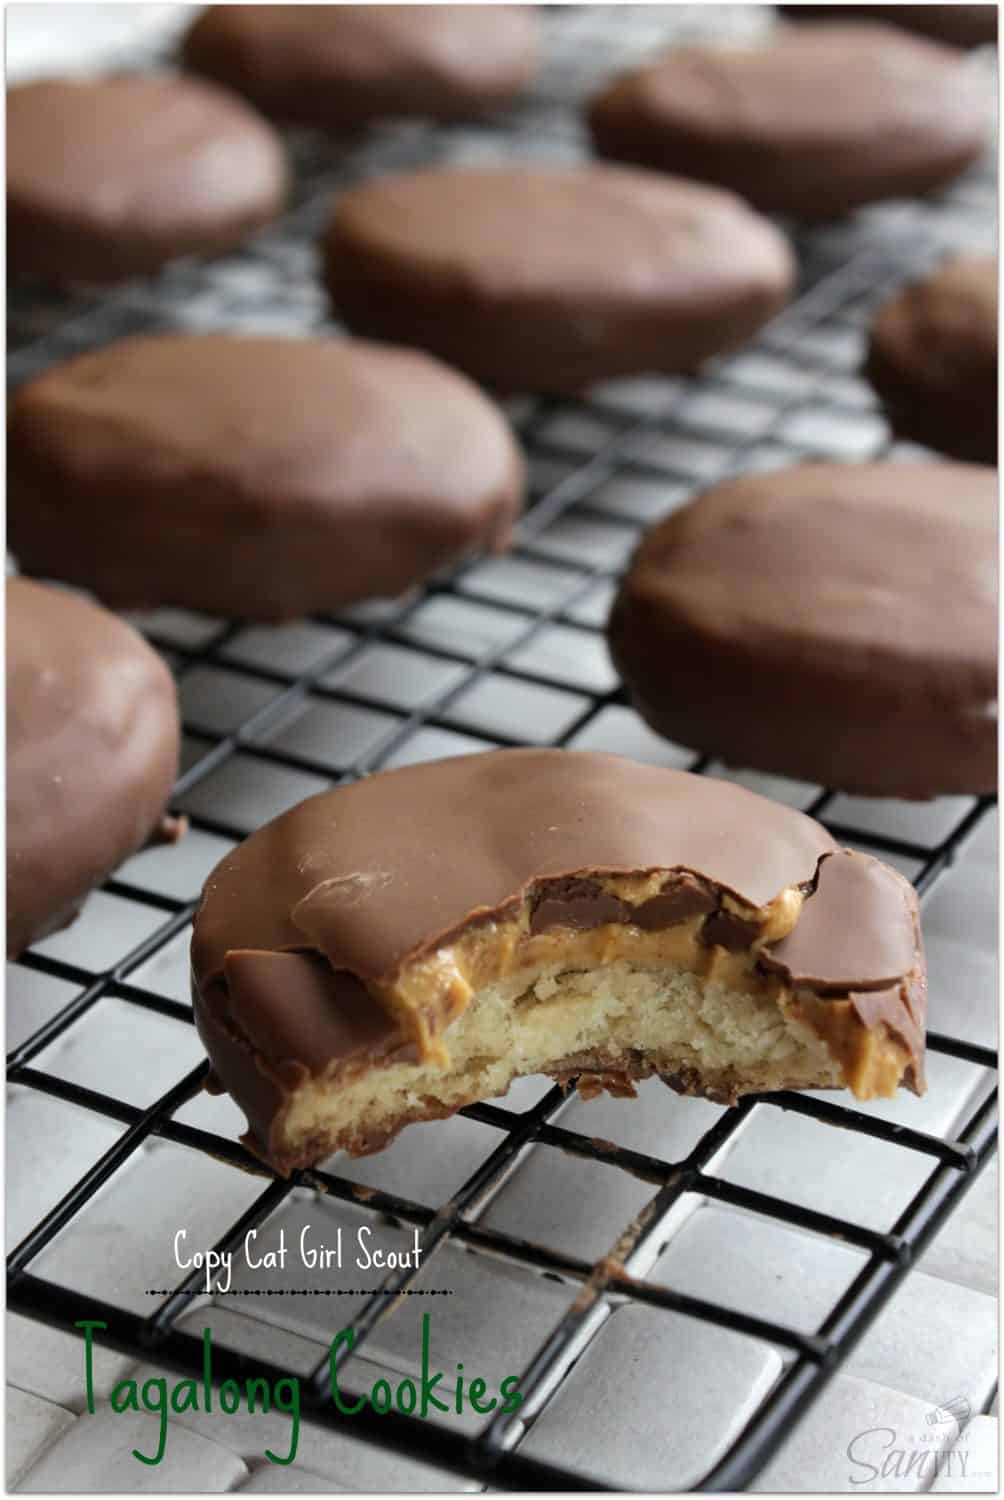 Copycat Girl Scout Tagalong cookies recipe